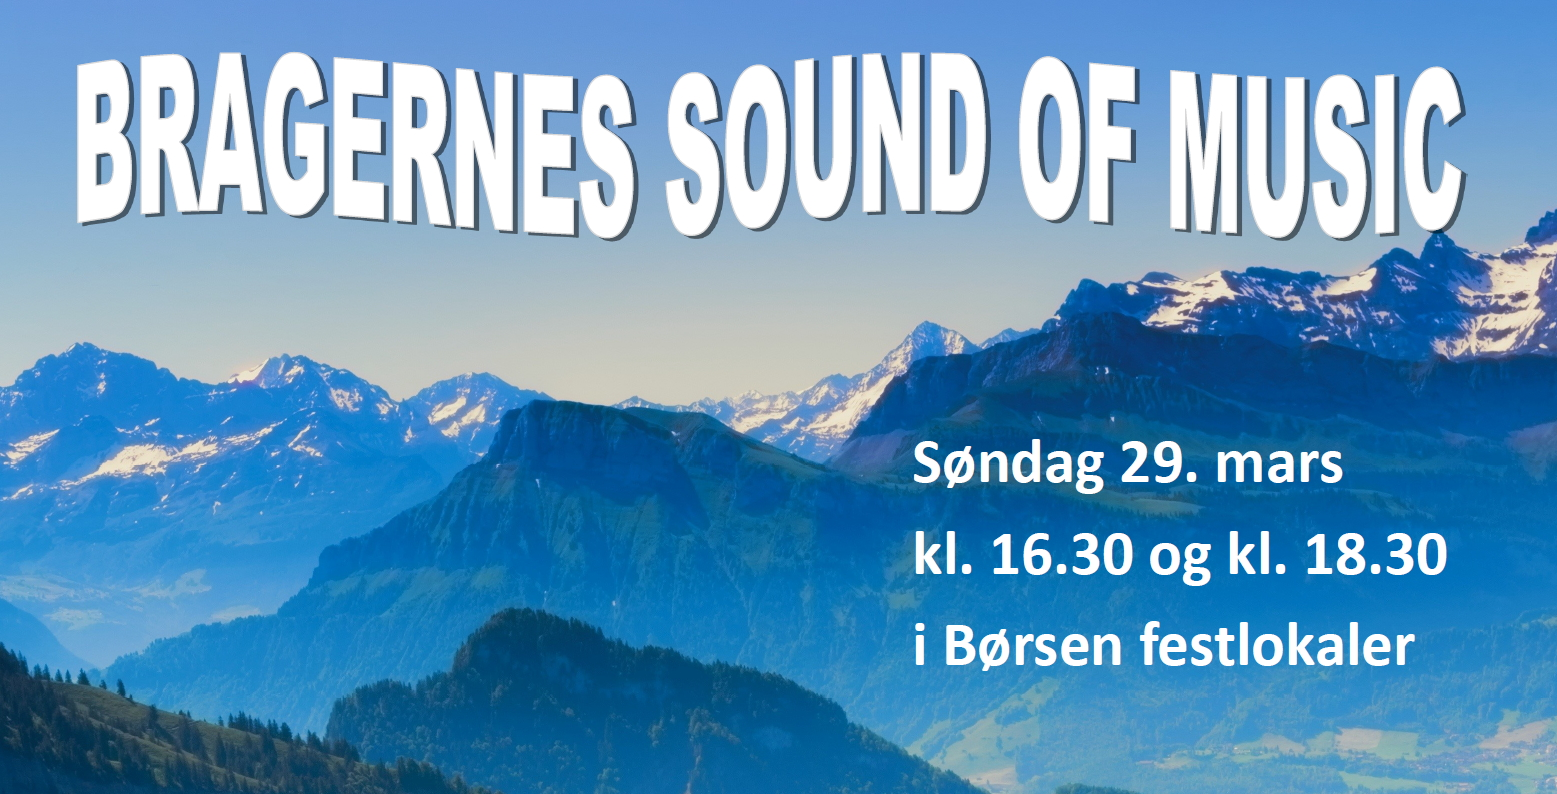 Bragernes sound of music 2020 heading.jpg